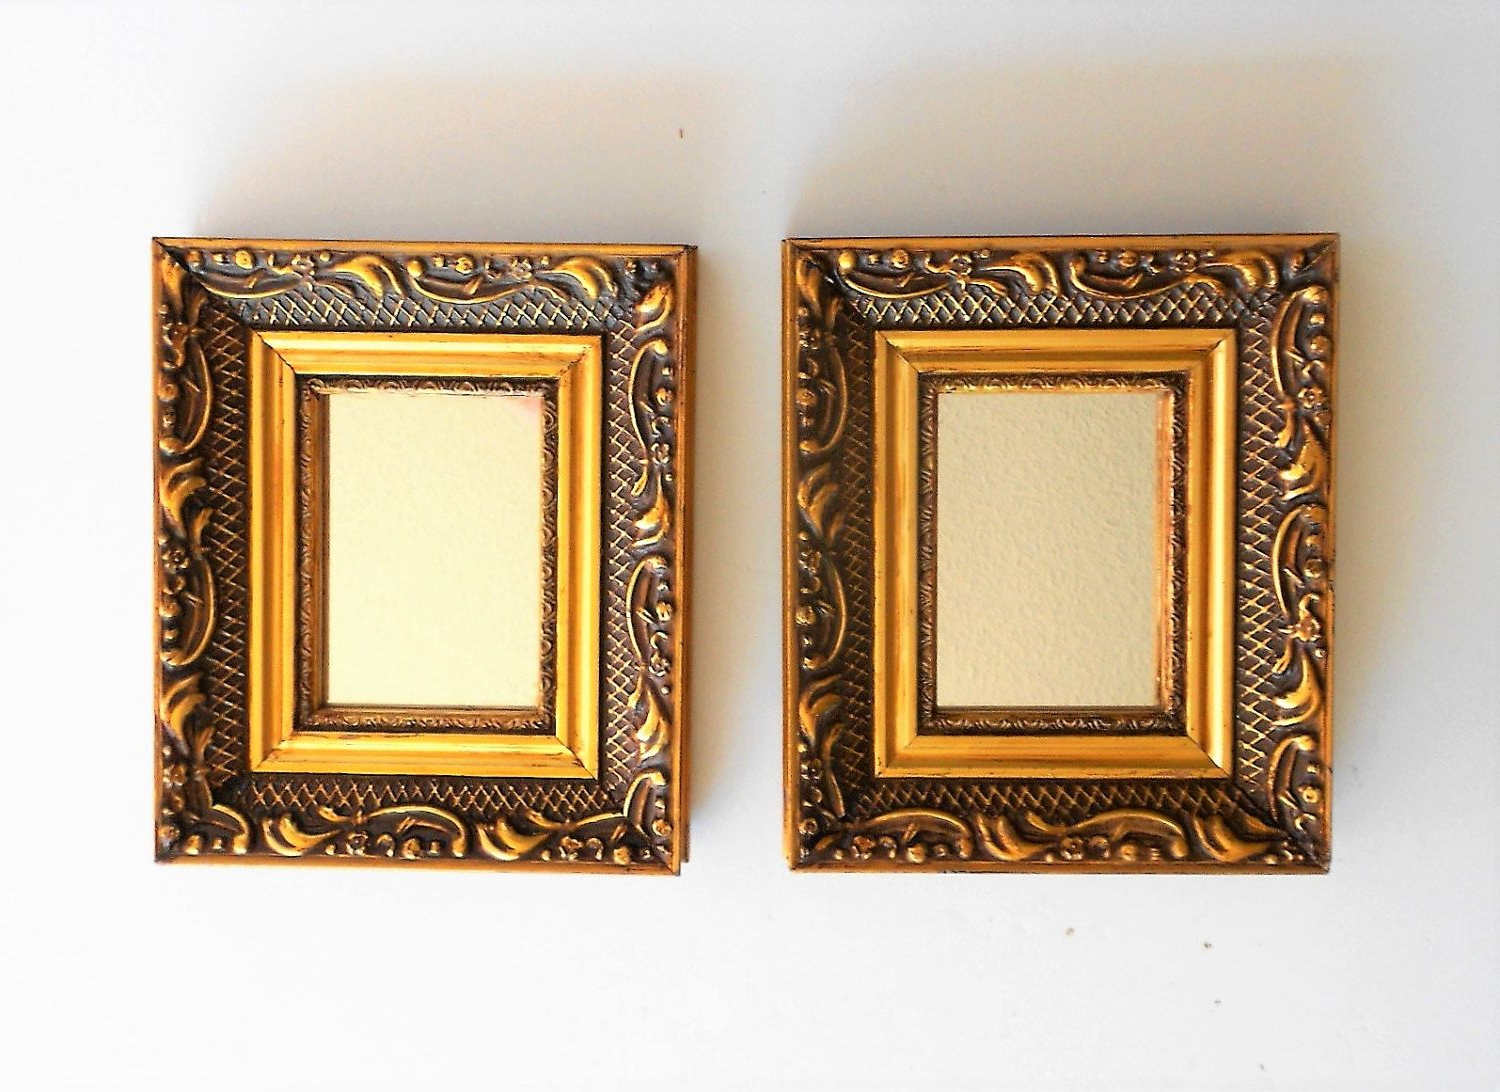 2019 Small Gold Wall Mirrors In  (View 1 of 20)